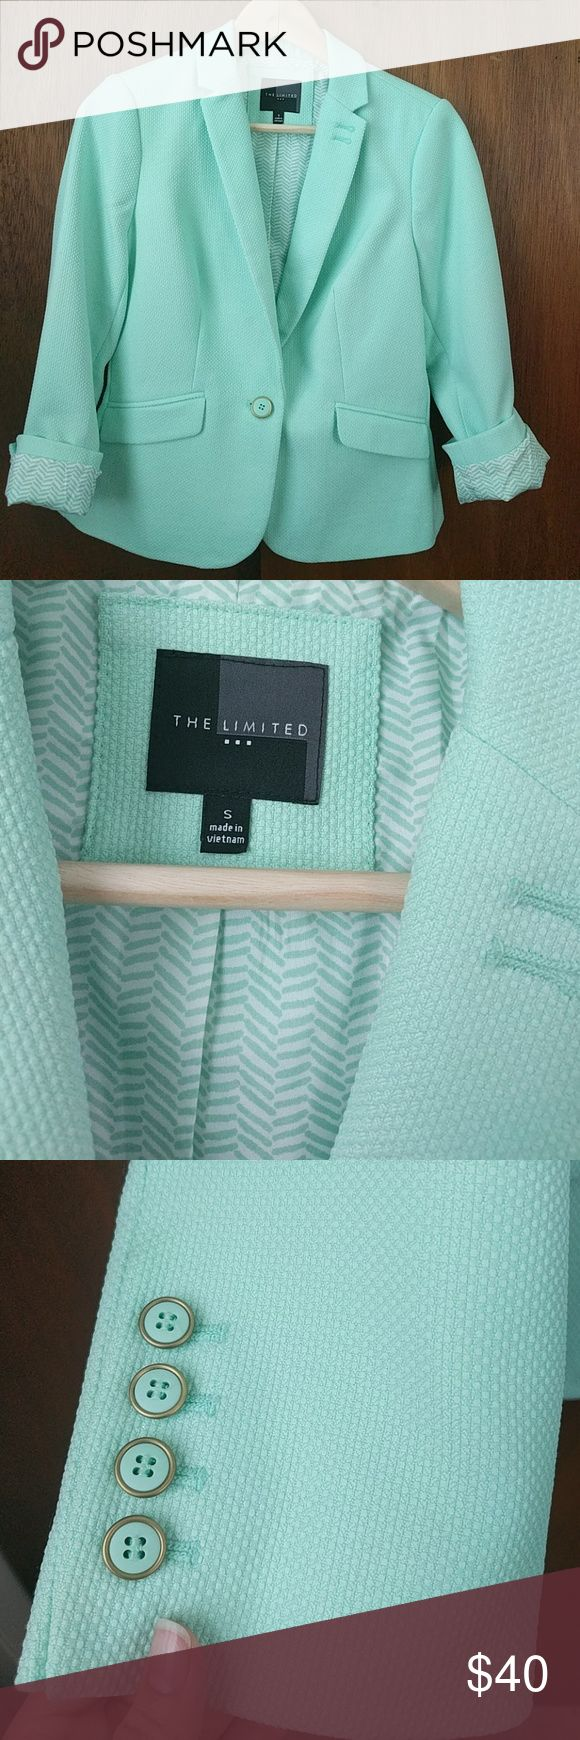 The Limited Mint Green Blazer The Limited Mint Green Blazer. Super cute on with printed lining. Like new condition, only worn a couple of times // Comes from a smoke-free and pet-free home.   ?? Bundles welcomed ?? Offers welcomed through the offer button The Limited Jackets & Coats Blazers